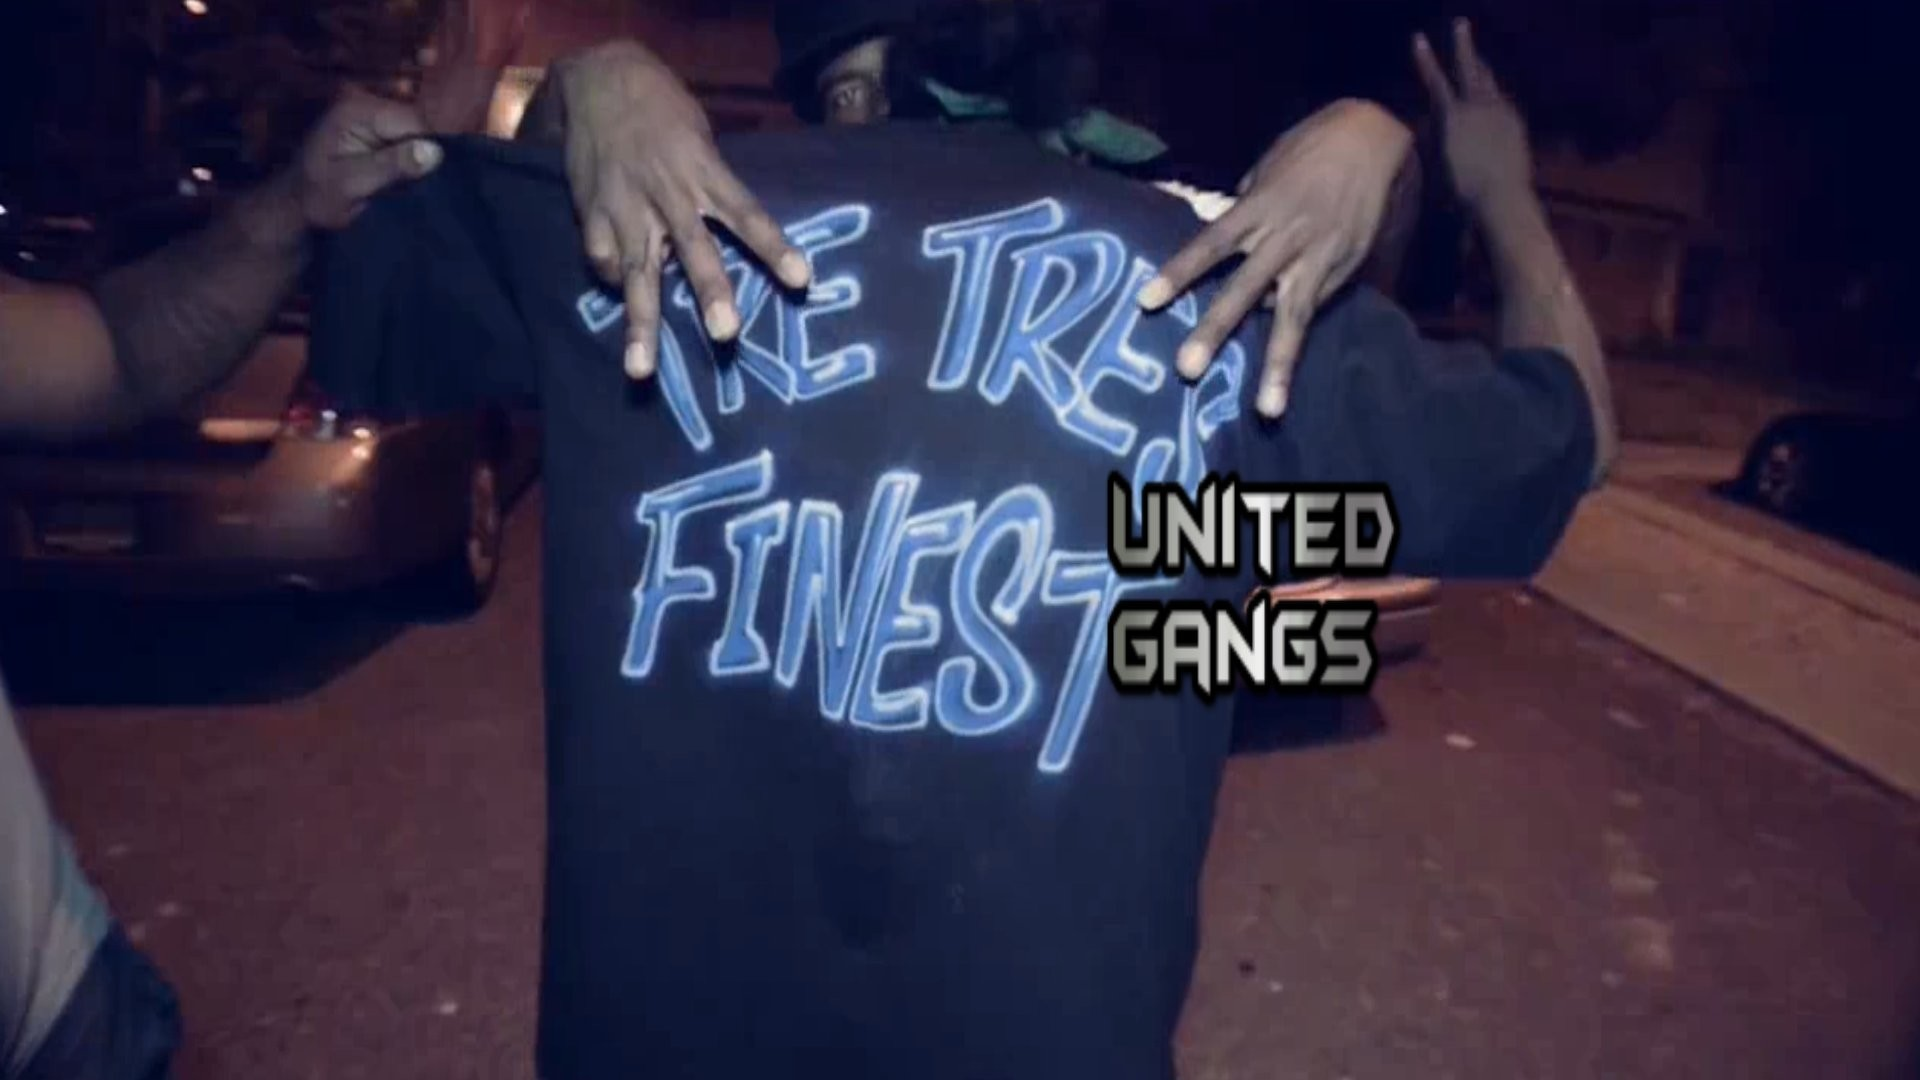 The Rolling 30s Crips also known as Tre-O Crips are an African-American  street gang located in the neighborhood of Northeast Denver, Colorado.